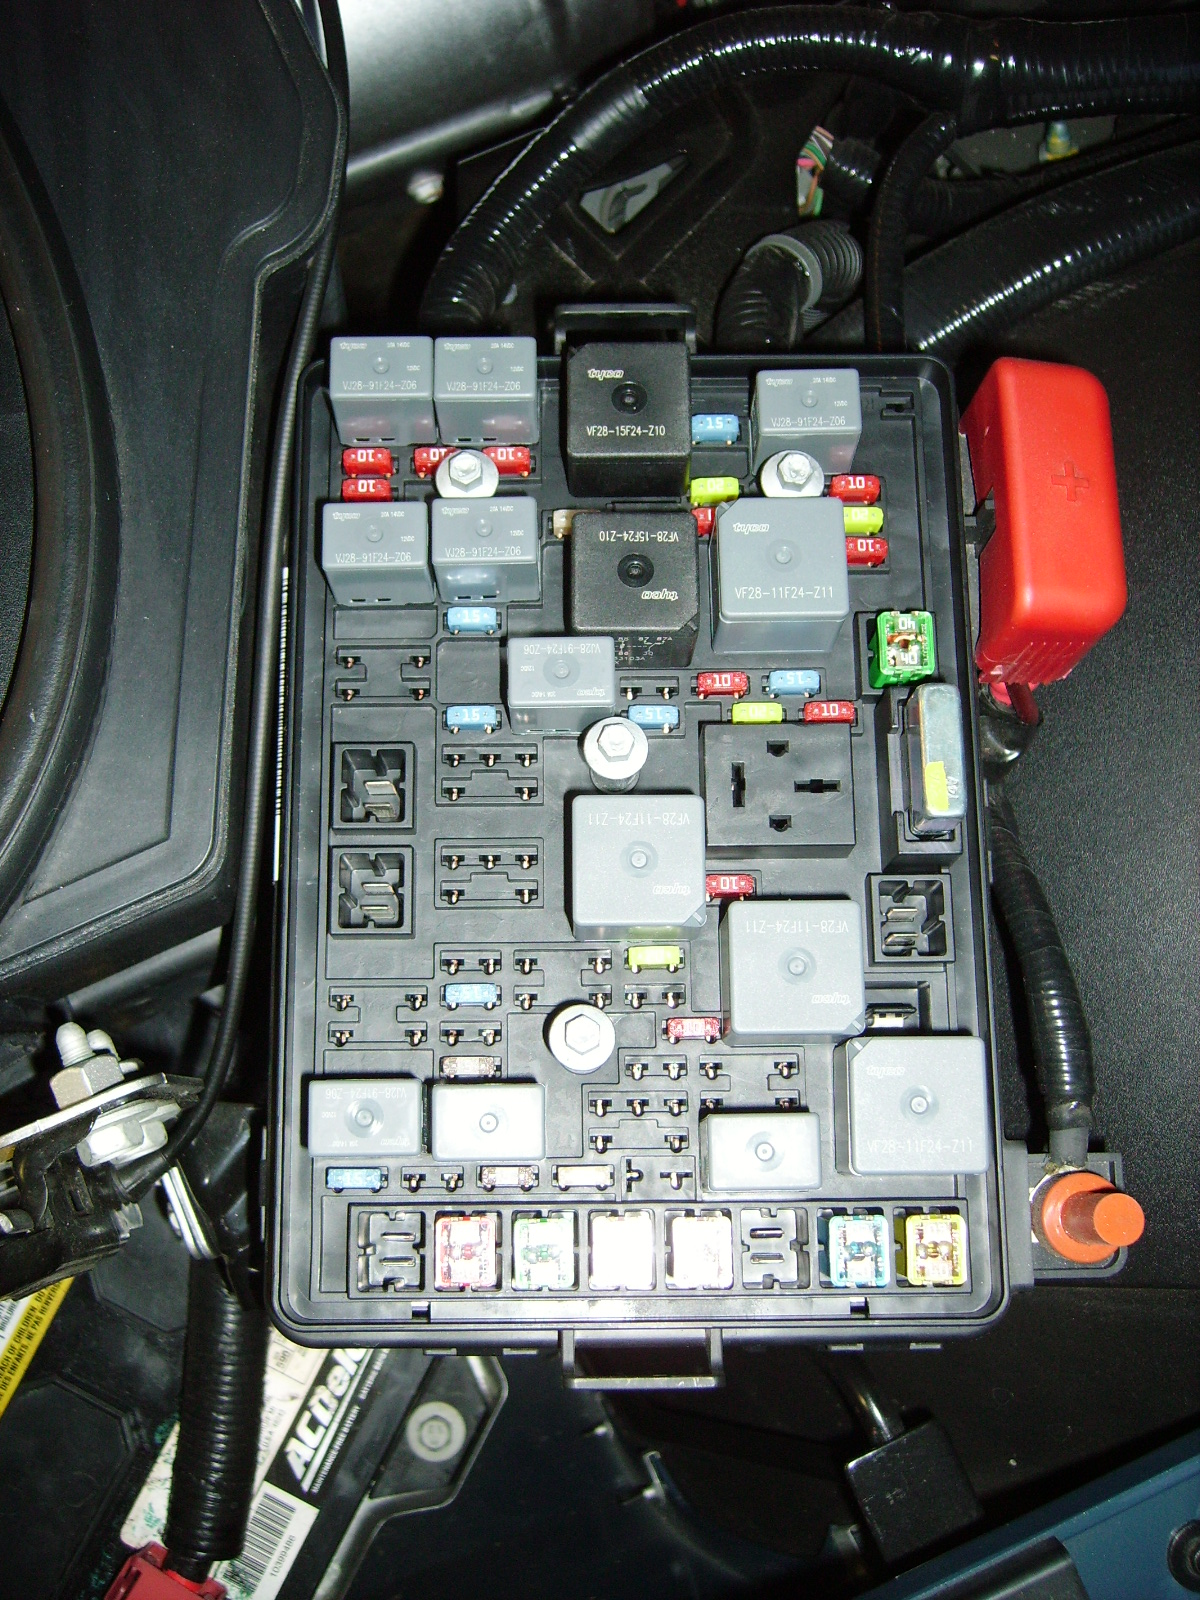 40354d1305120997 reverse light out fuse box under hood 07 saturn ion fuse box 2004 saturn ion spoiler \u2022 wiring diagrams 2005 f350 under hood fuse panel diagram at fashall.co